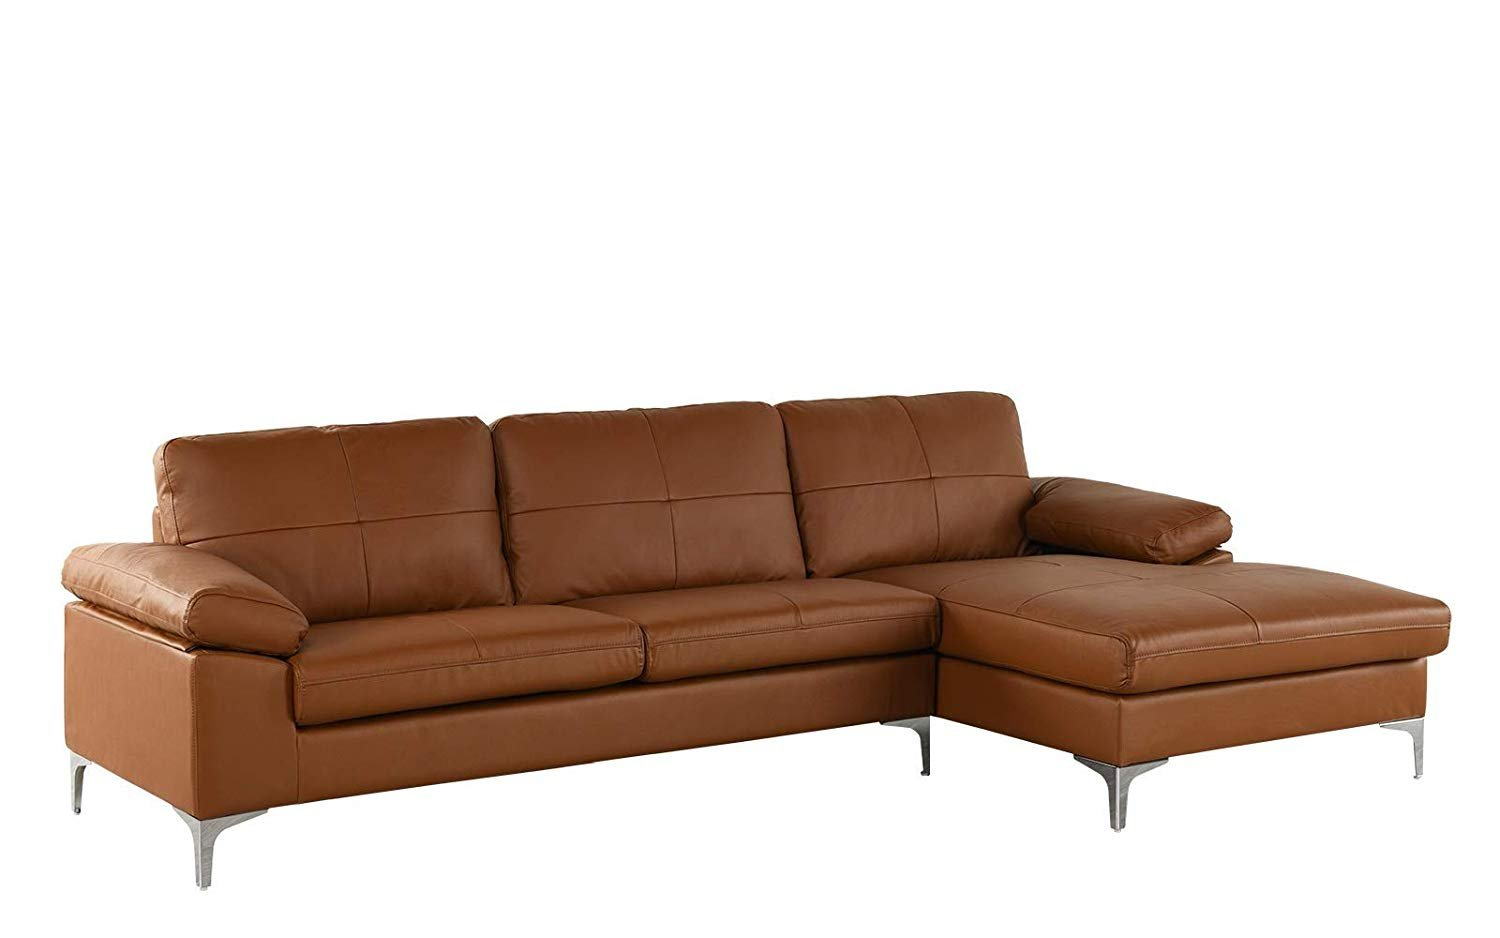 Details about Camel Large Leather Sectional Sofa, L-Shape Couch with  Chaise, 108.7\